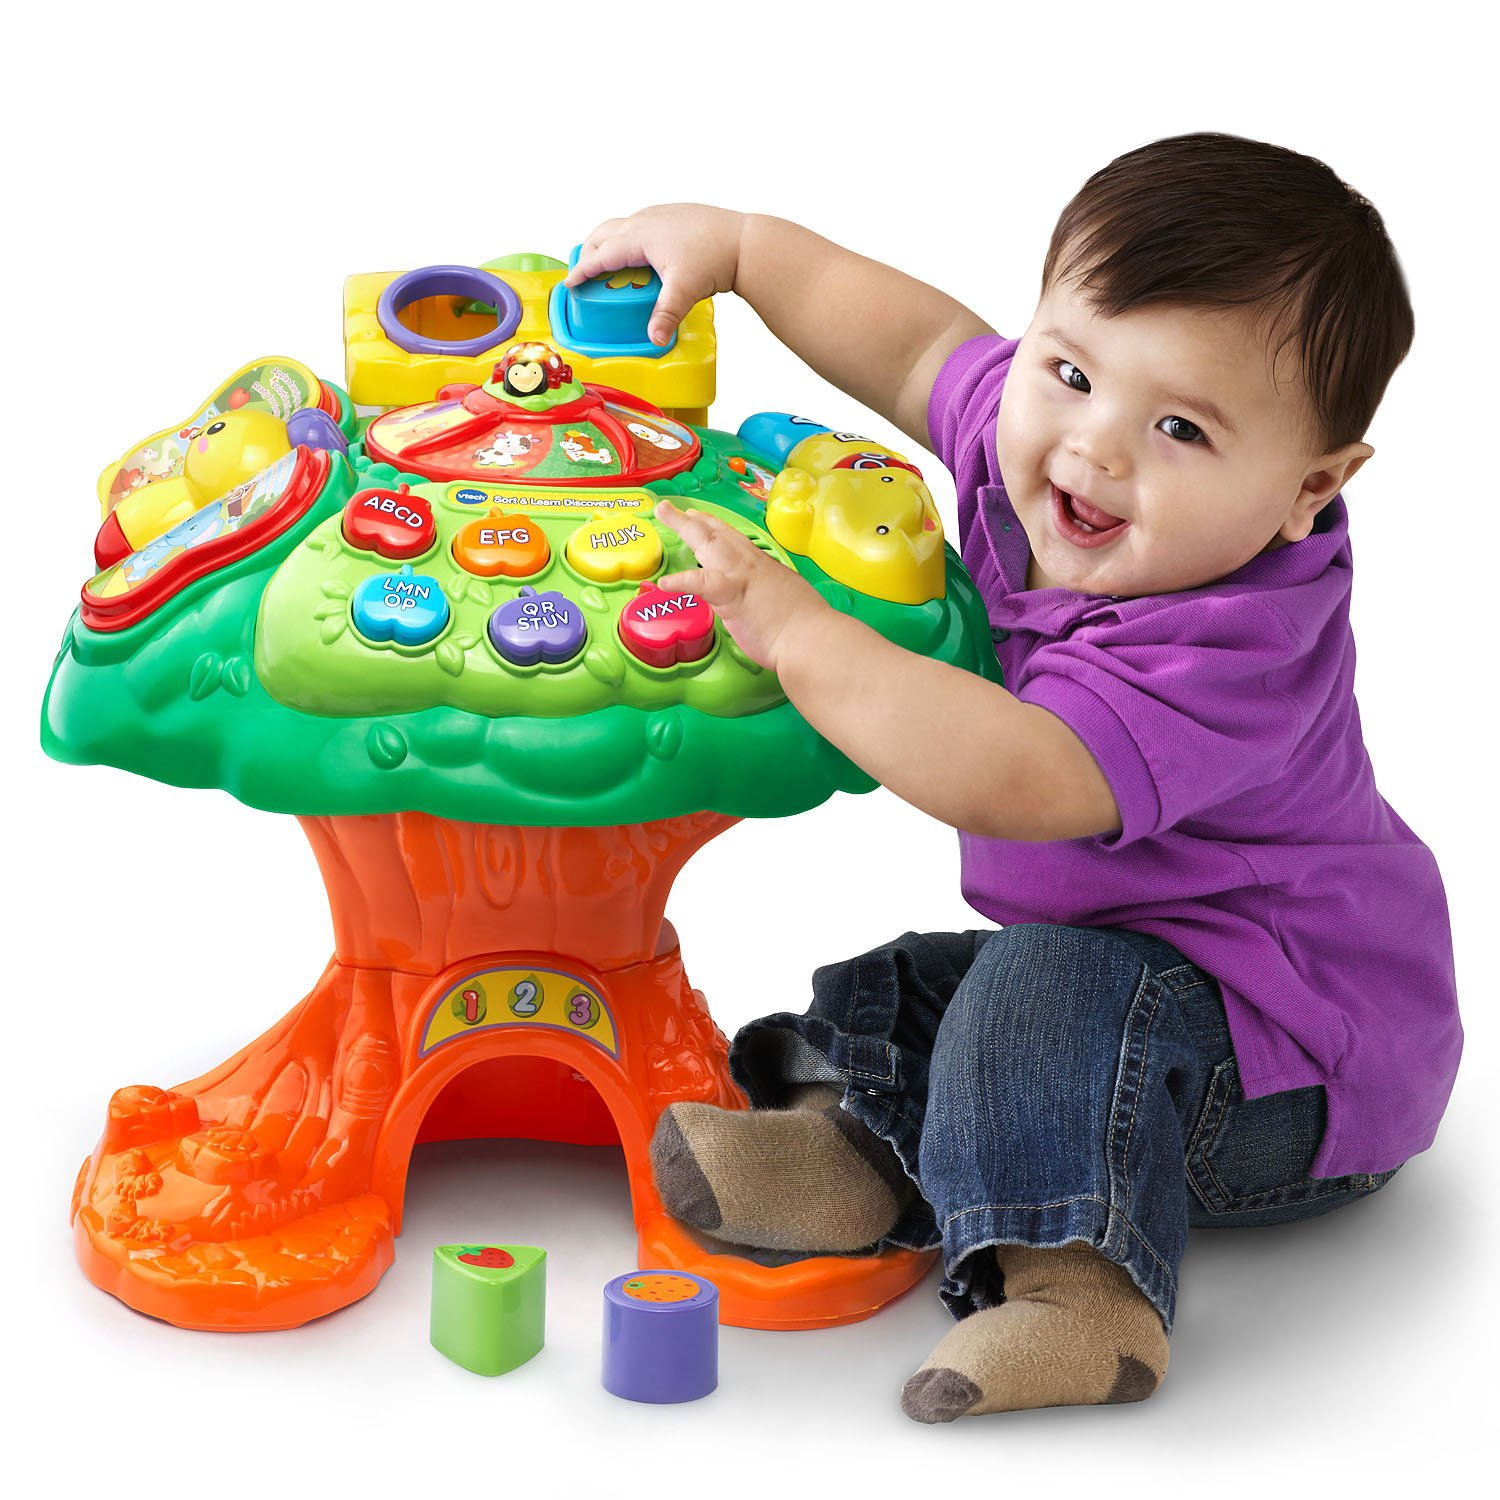 VTech Sort and Learn Discovery Tree (Amazon Exclusive) by VTech (Image #1)